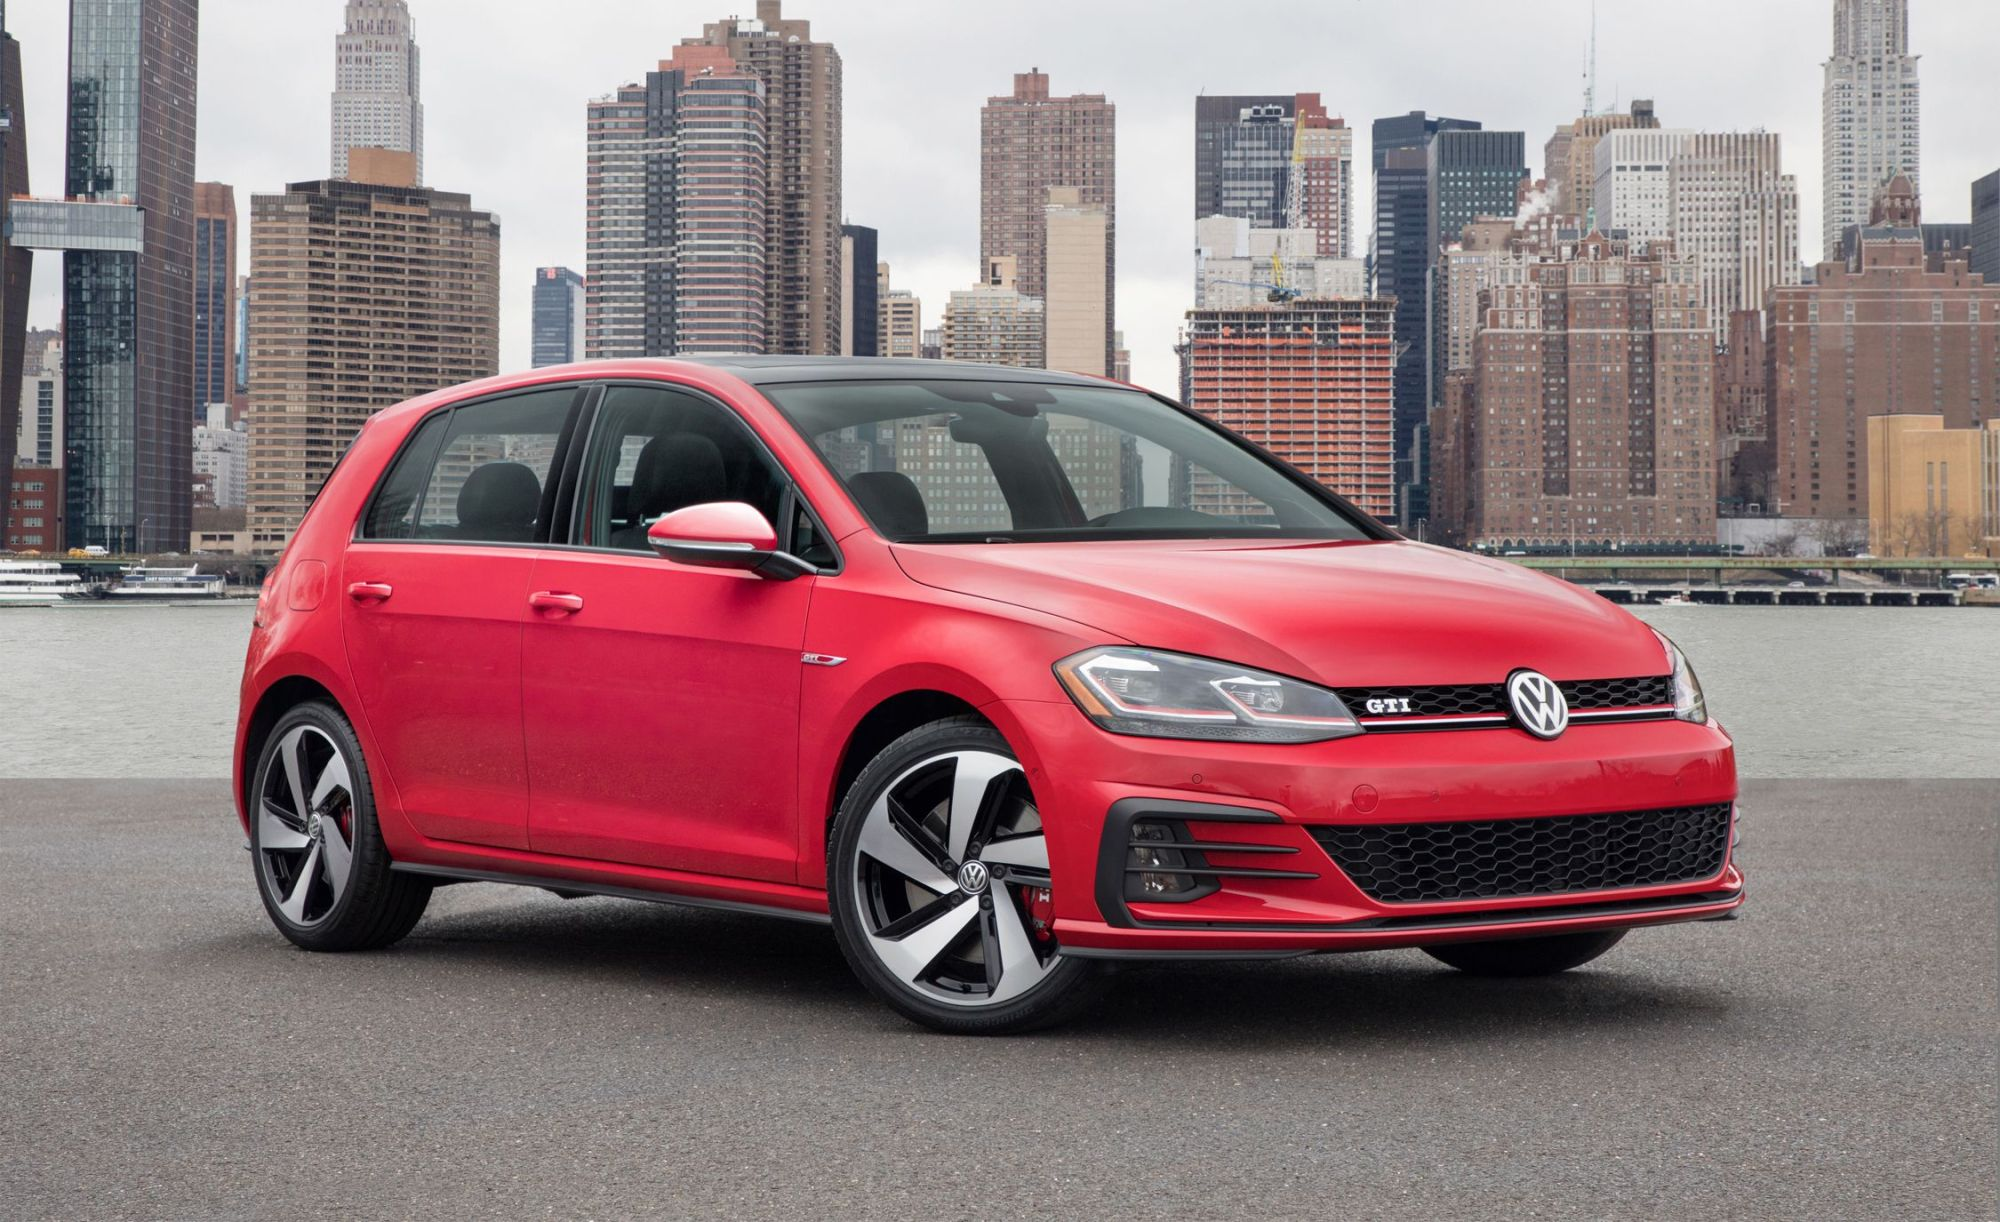 hight resolution of 2018 volkswagen golf gti and golf r photos and info 8211 news 8211 car and driver